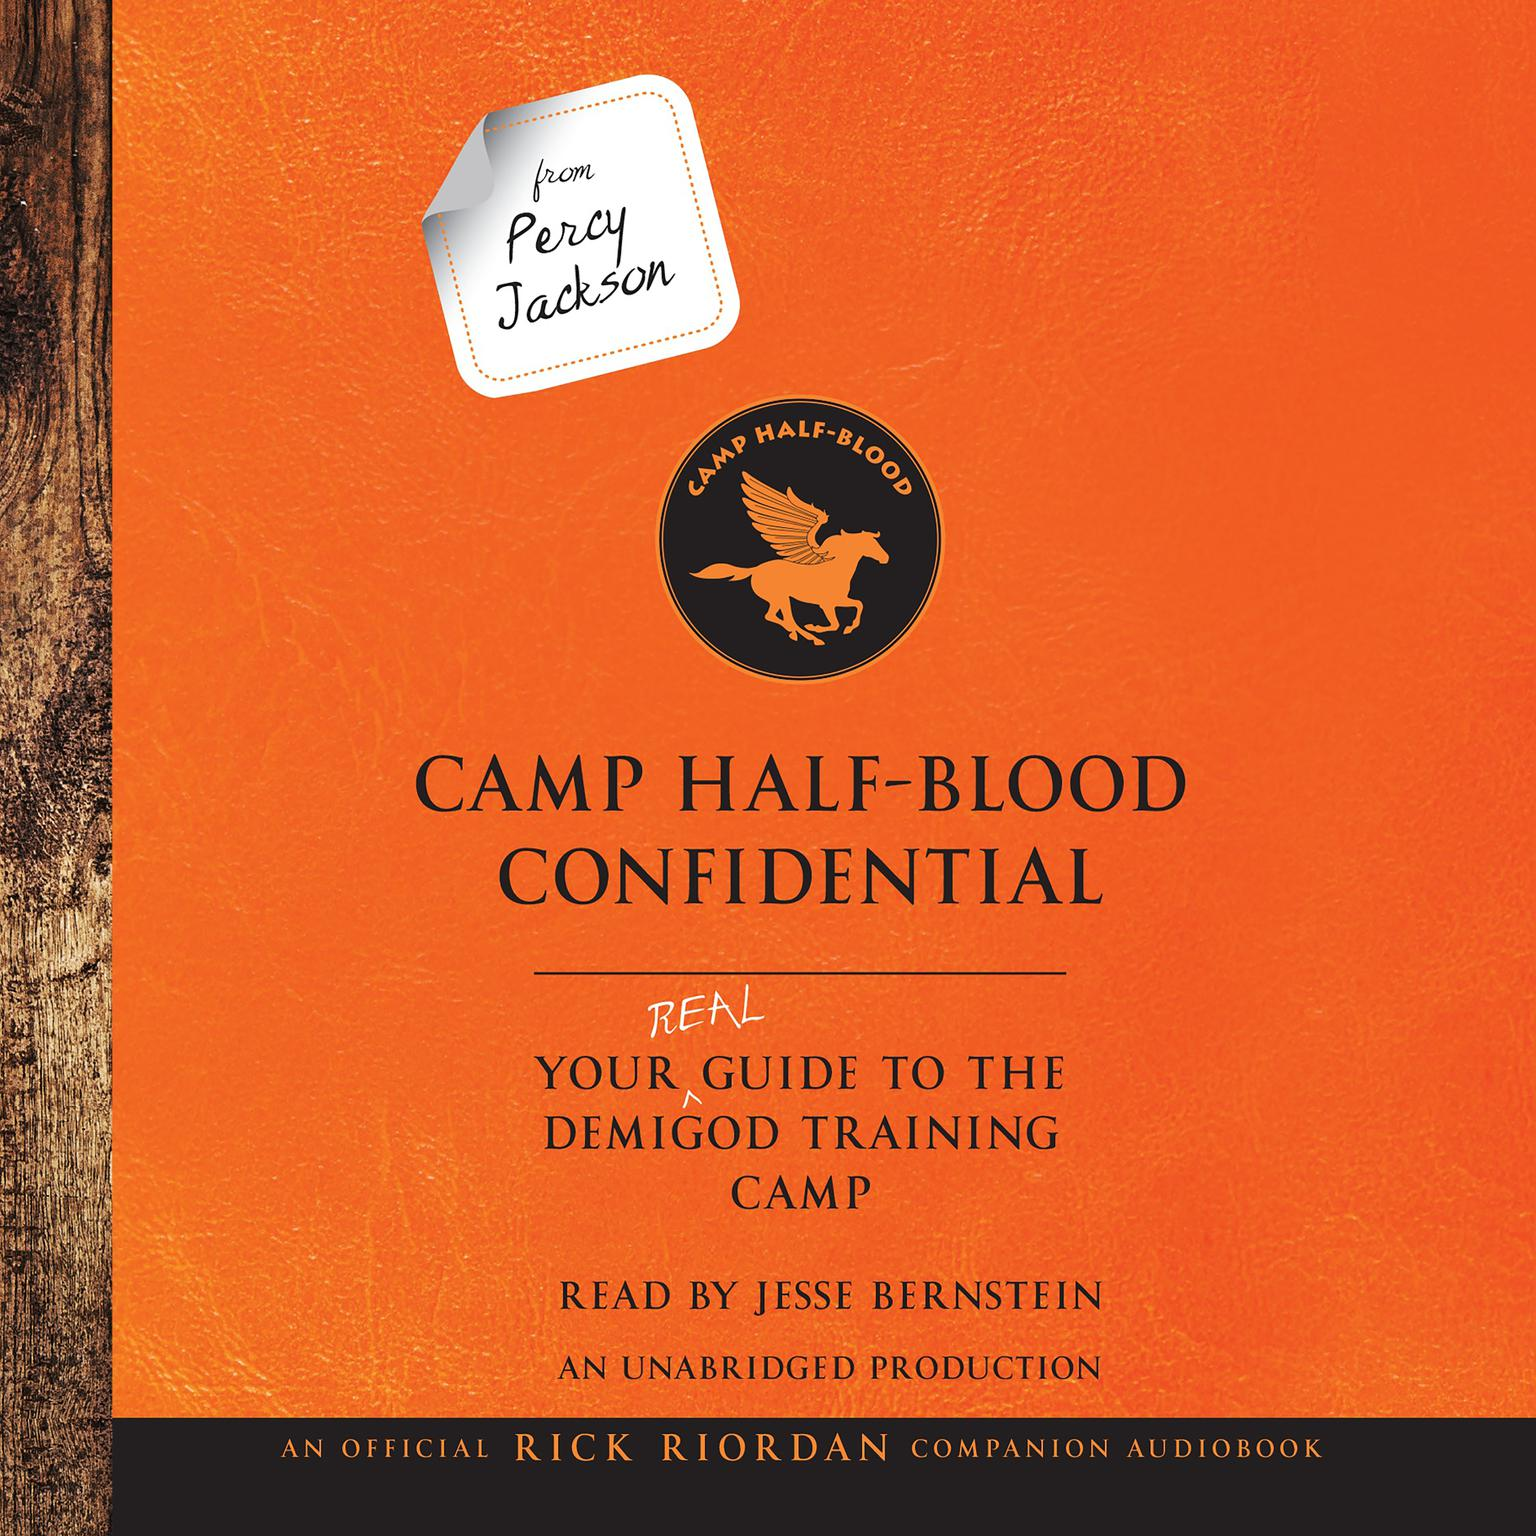 From Percy Jackson Camp Half Blood Confidential